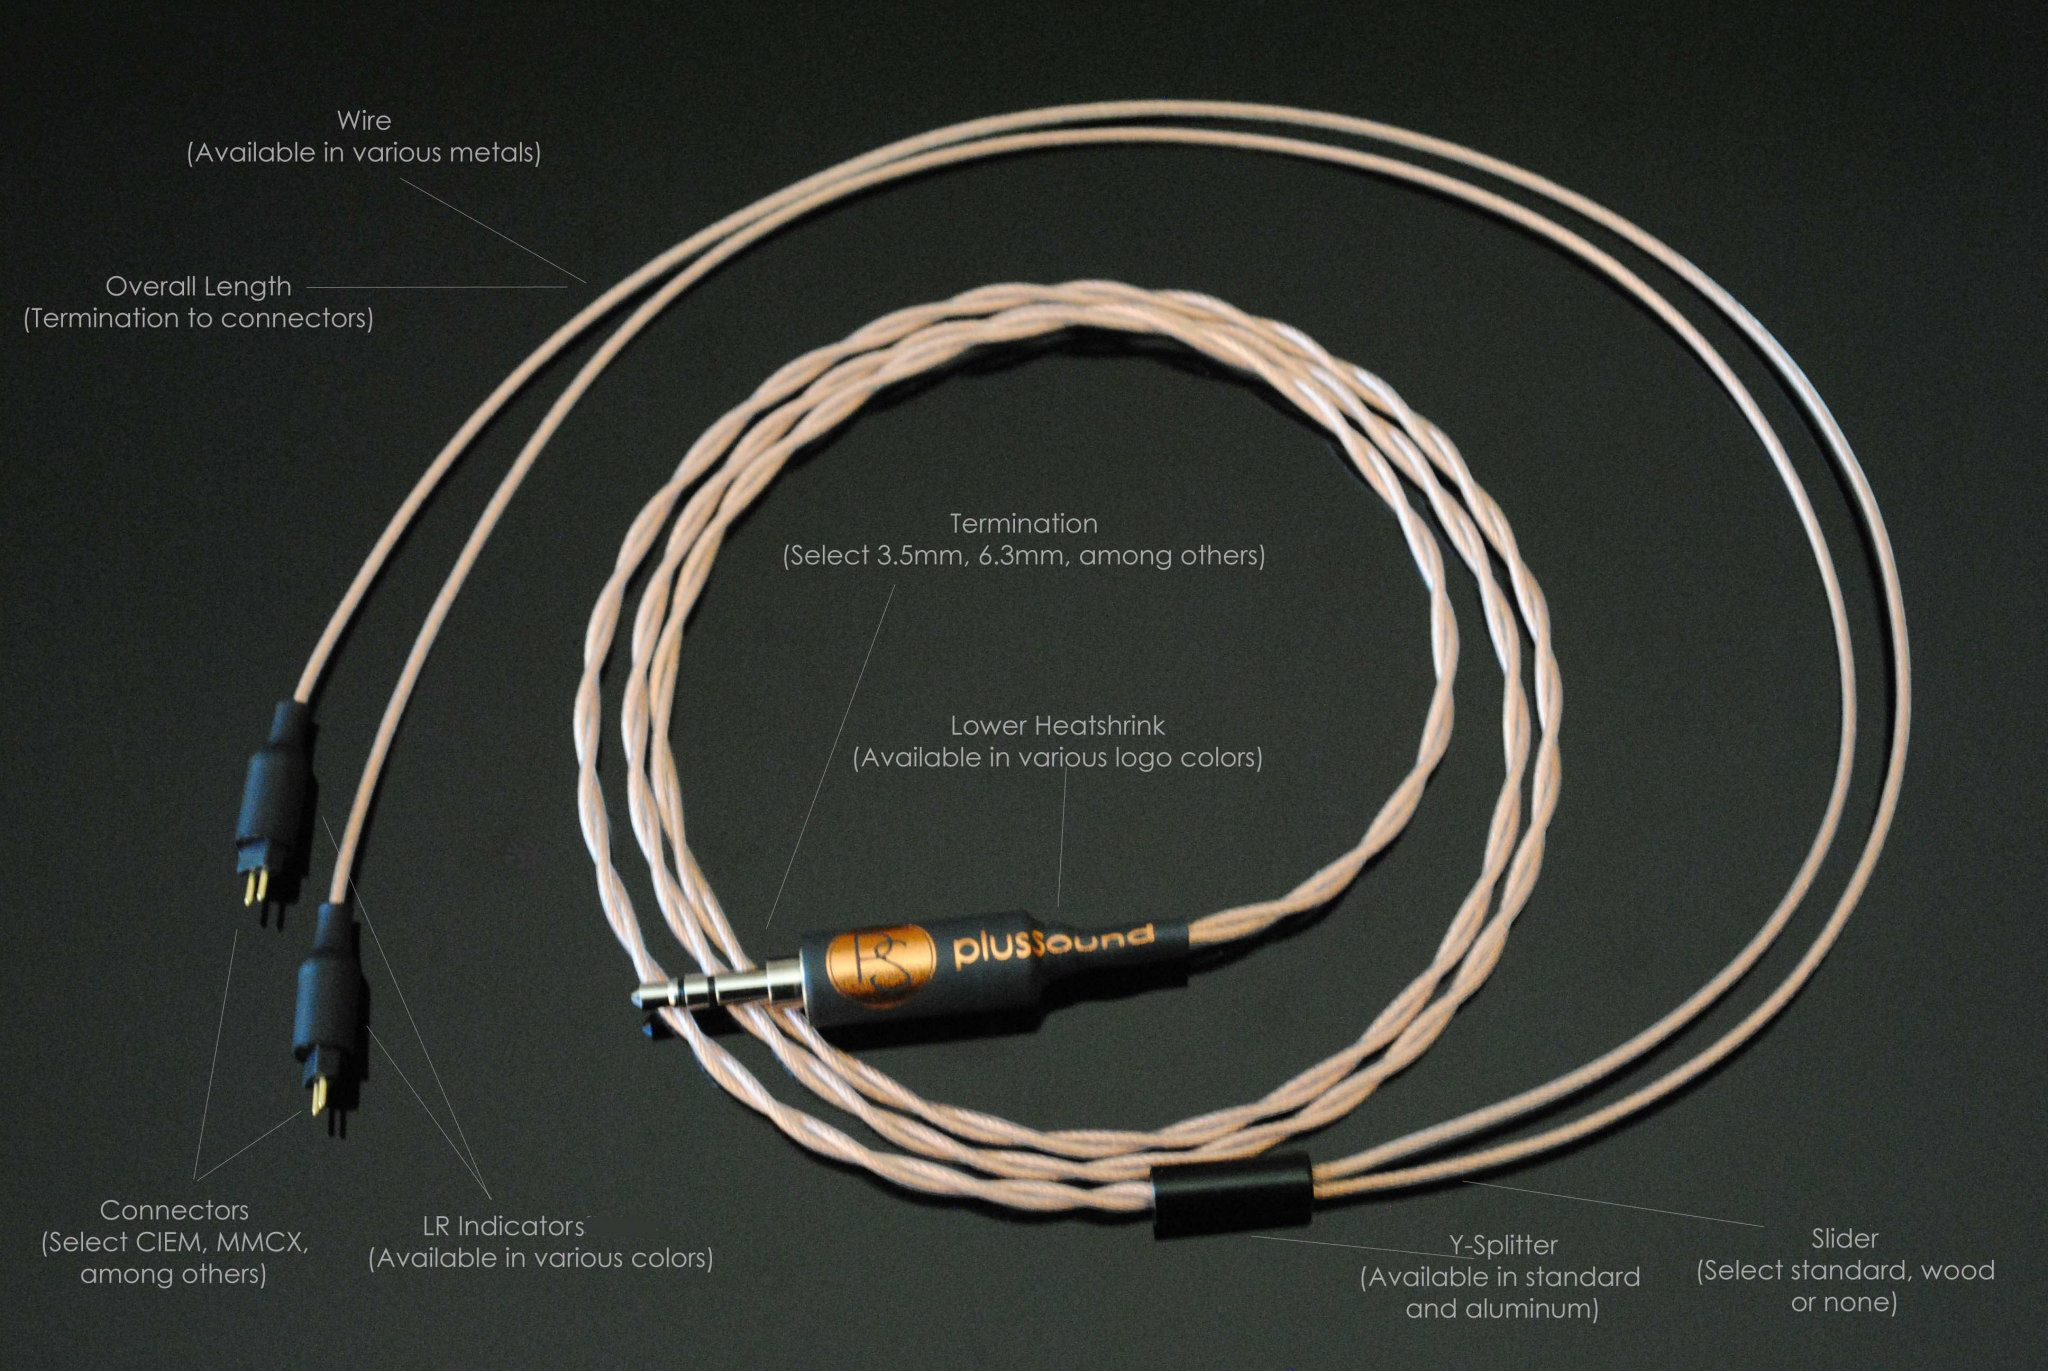 PlusSound X Series IEM cable | Reviews | Headphone Reviews and ...